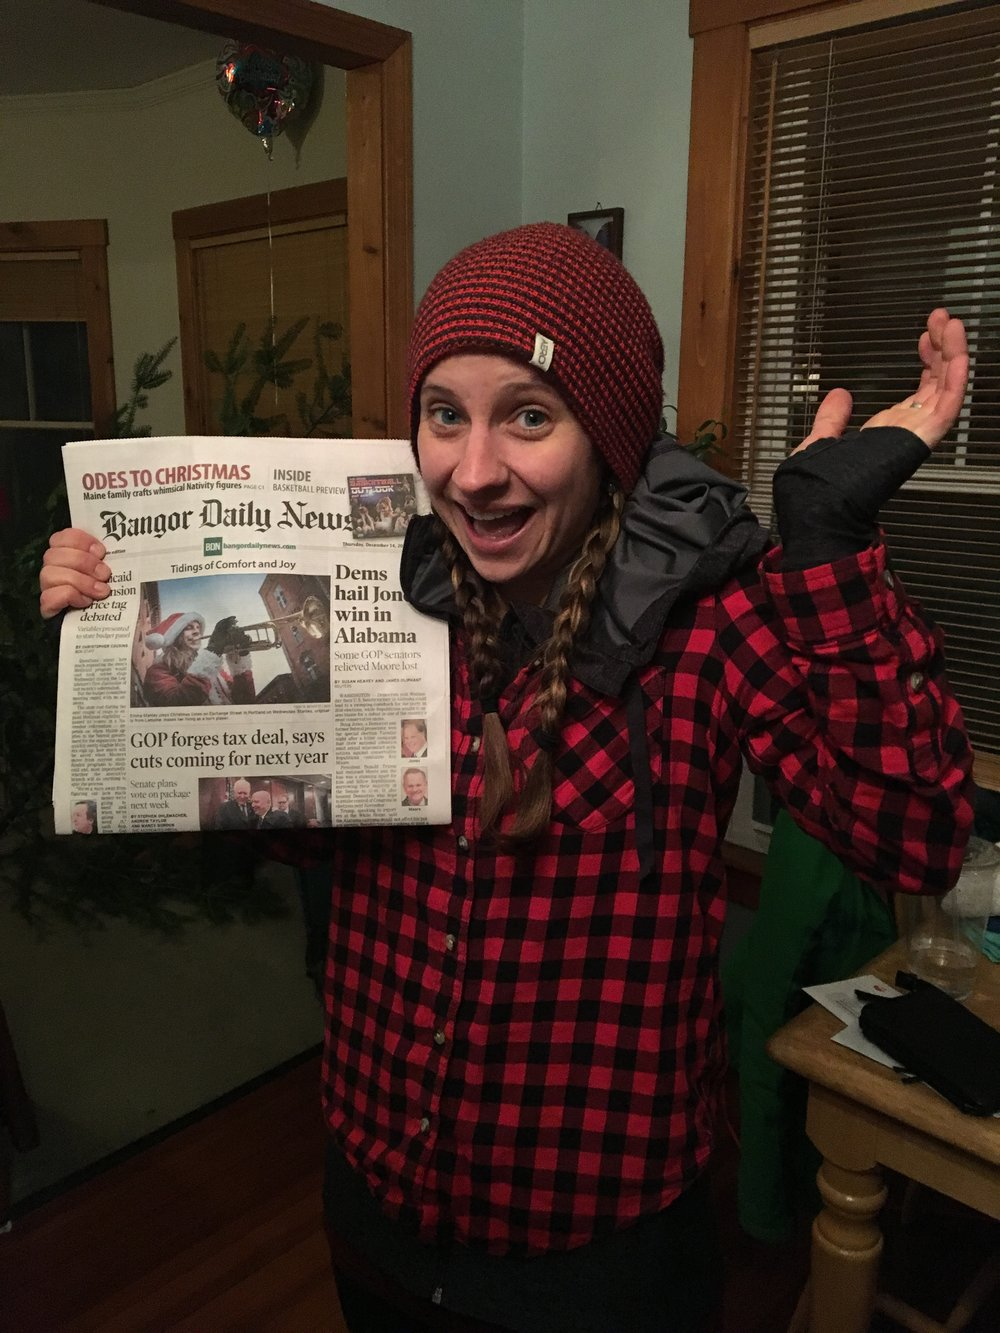 Made the front page!